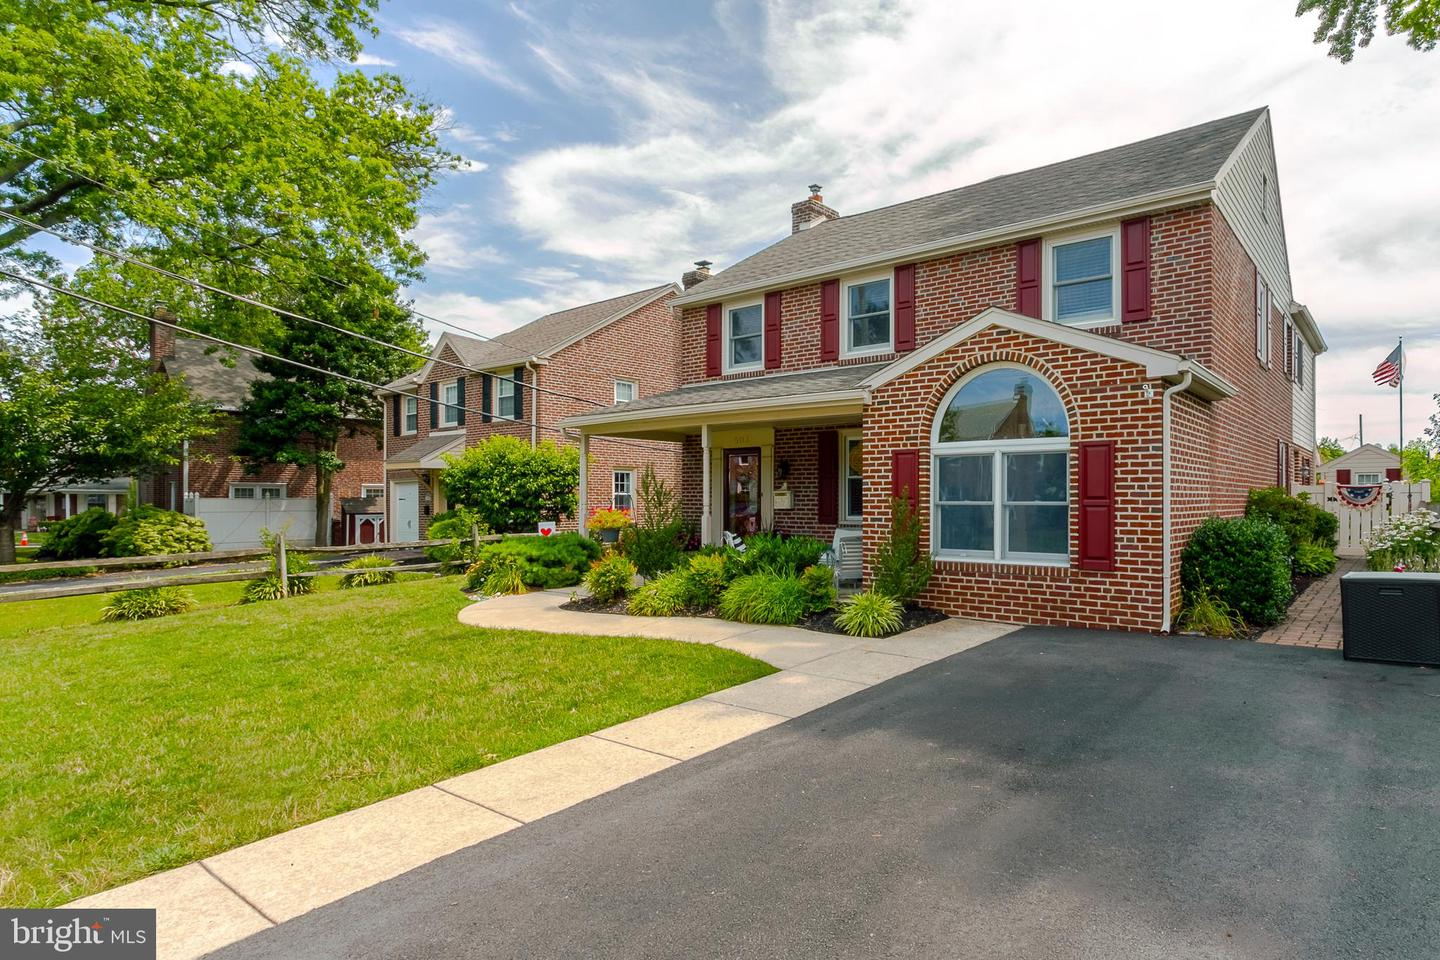 503 Shelbourne Road Havertown, PA 19083